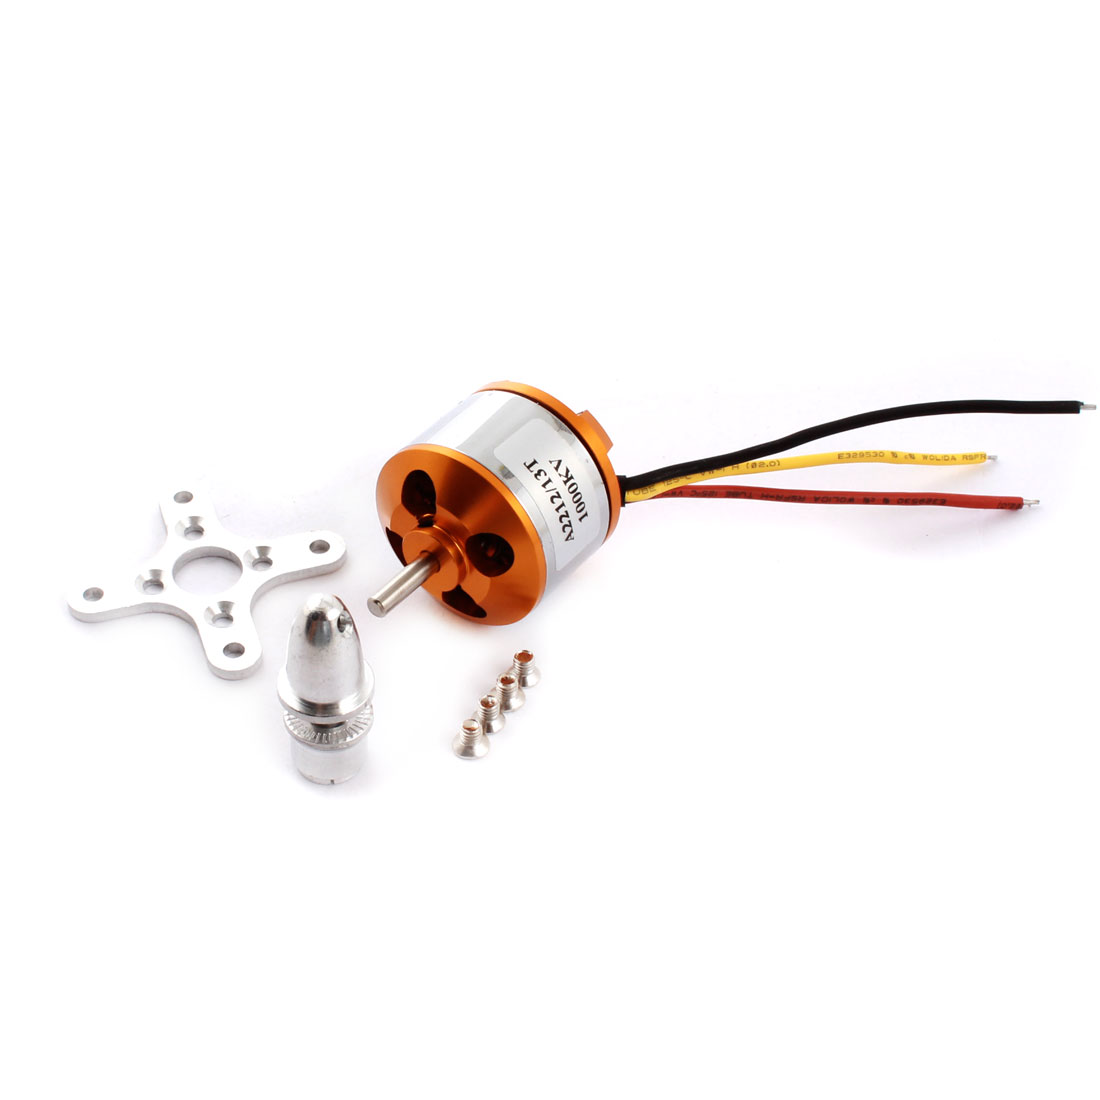 XXD2212 KV1000 13 Teeth 3-Wired Brushless Motor Replacement for RC Hexacopter Quadcopter